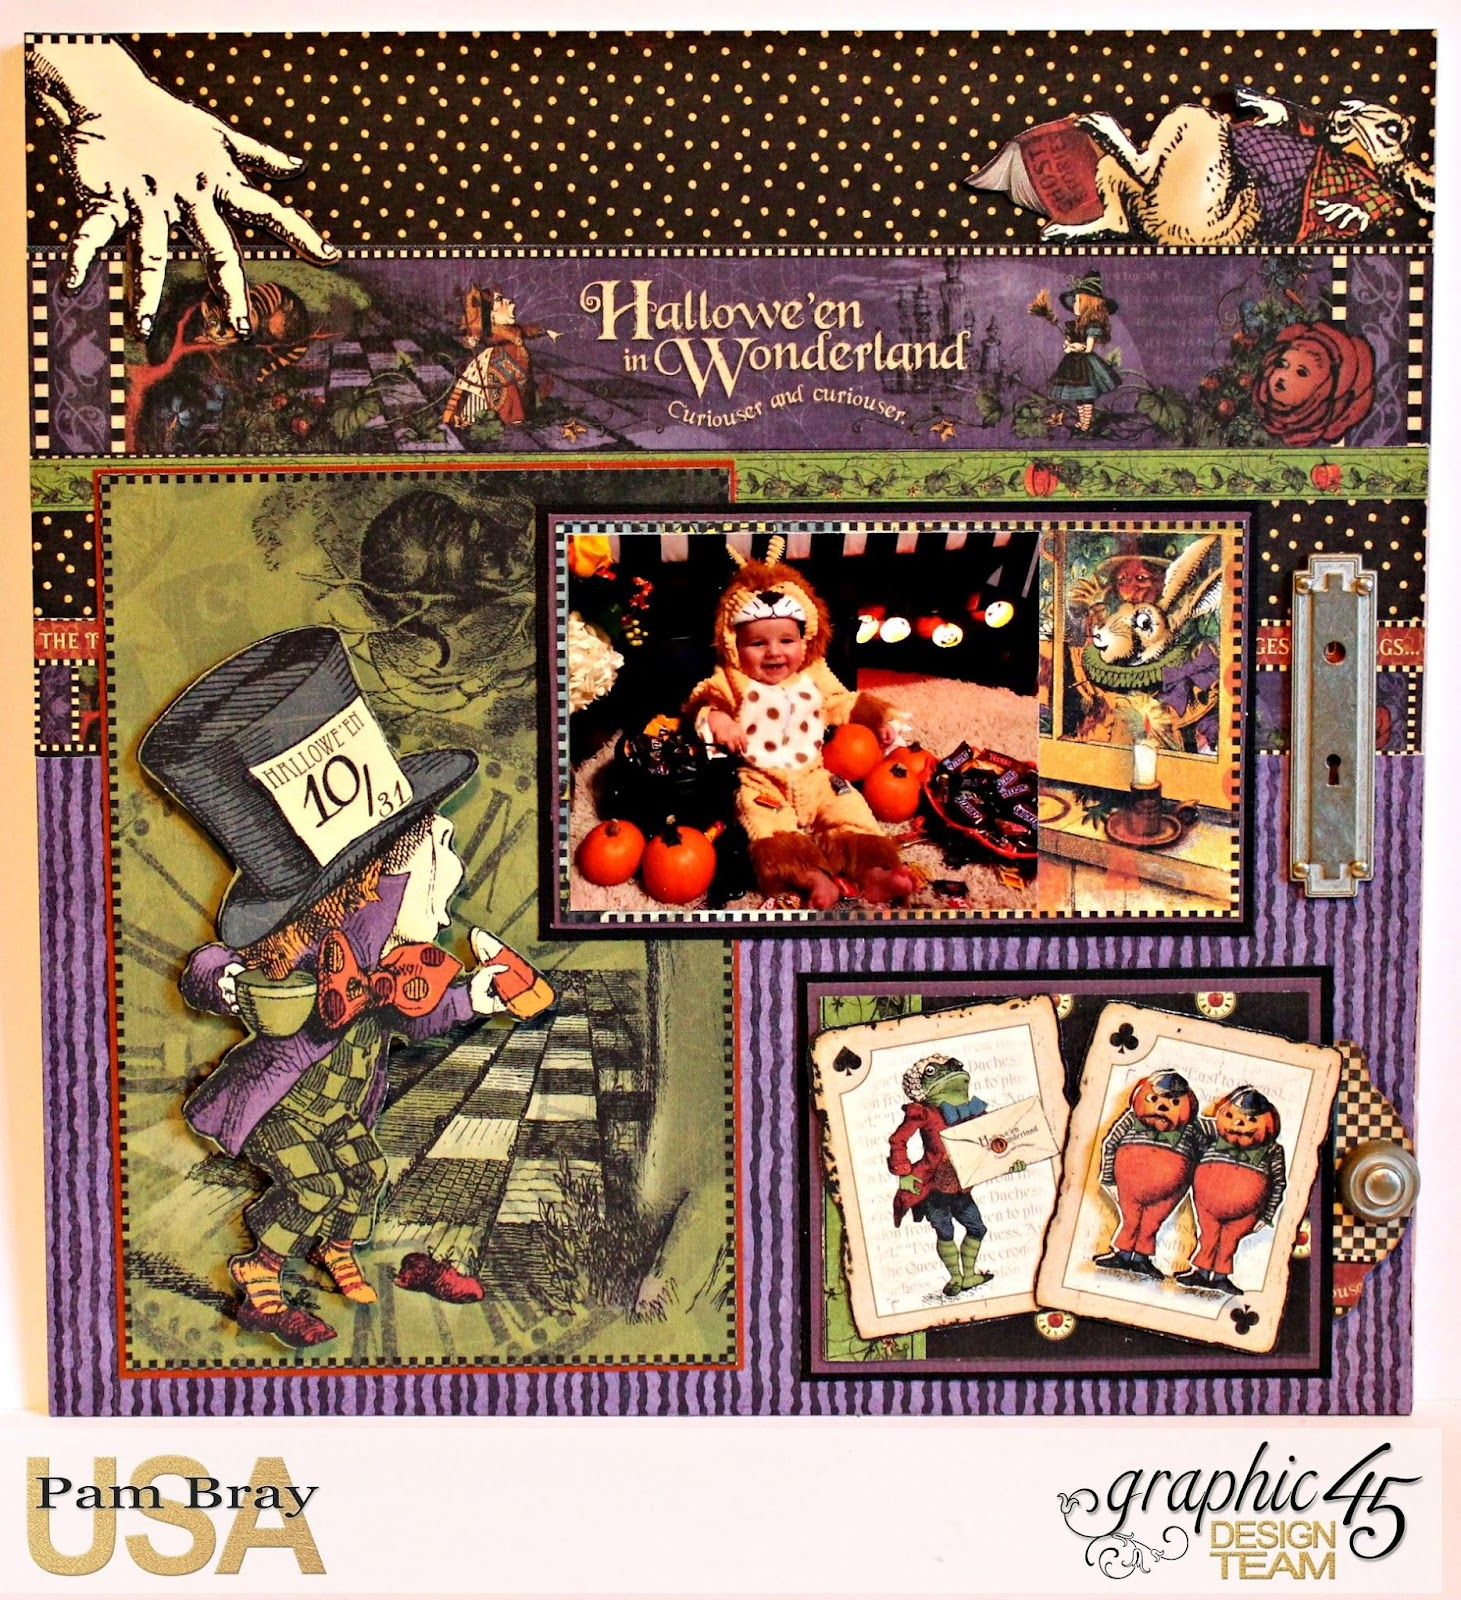 2017 G45 Brand Ambassadors- 2017 Pam Bray  - June 2017 - Halloween in Wonderland Layout - Photo 1_7508.jpg